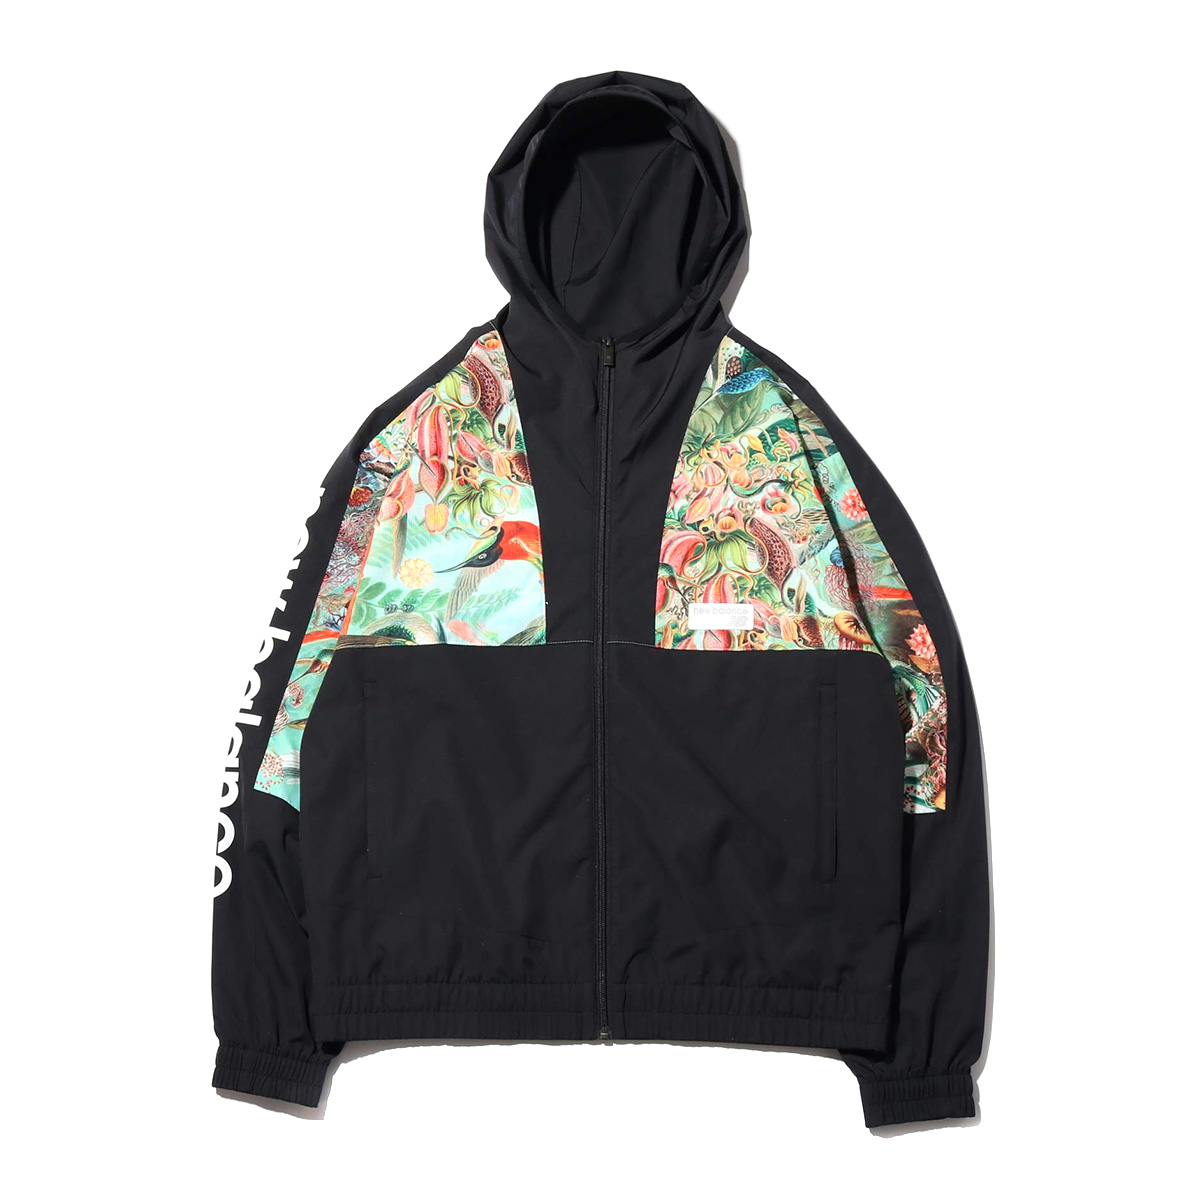 New Balance X atmos SWEET NECTAR NB Athletic Windbreaker (New Balance X atmos NB ウィンドブレーカー)ブラック【メンズ_ レディース ジャケット】19SS-I